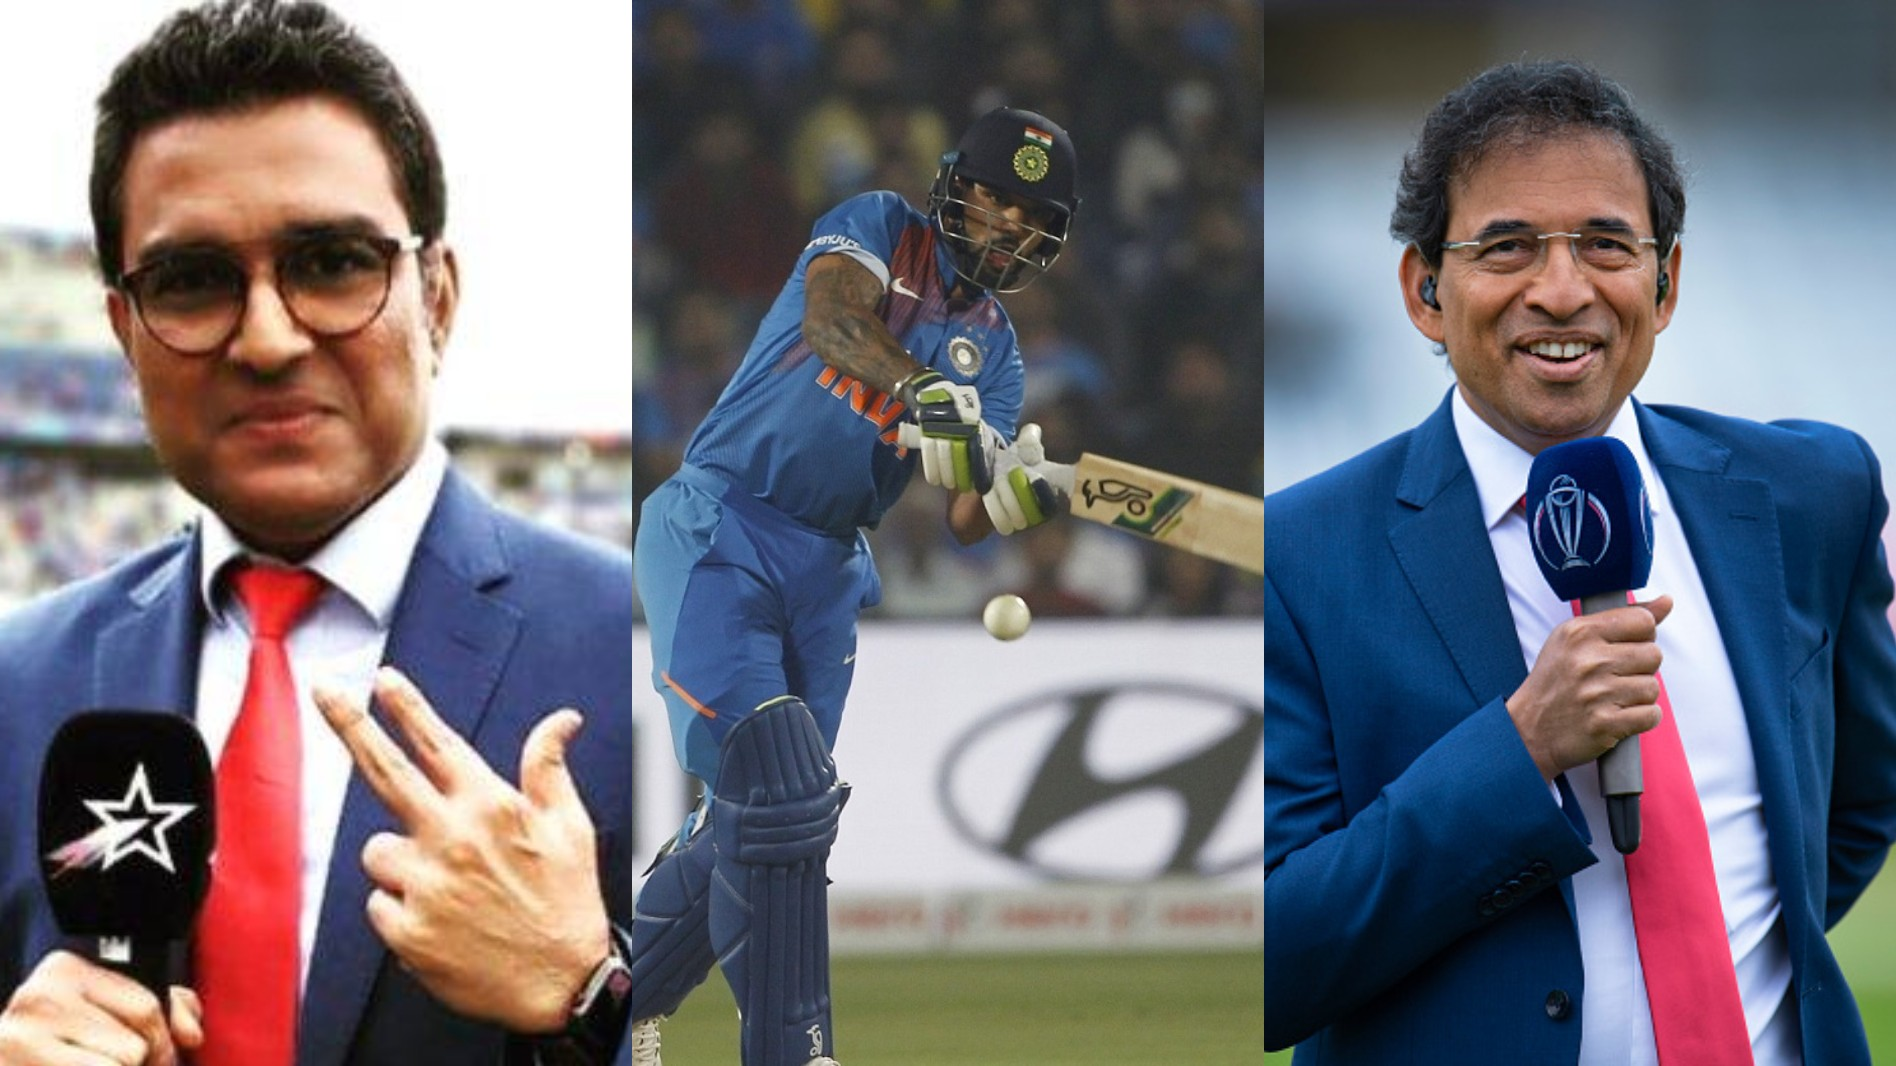 IND v SL 2020: Cricket fraternity praises Shikhar Dhawan as his 52 helps Team India to 201/6